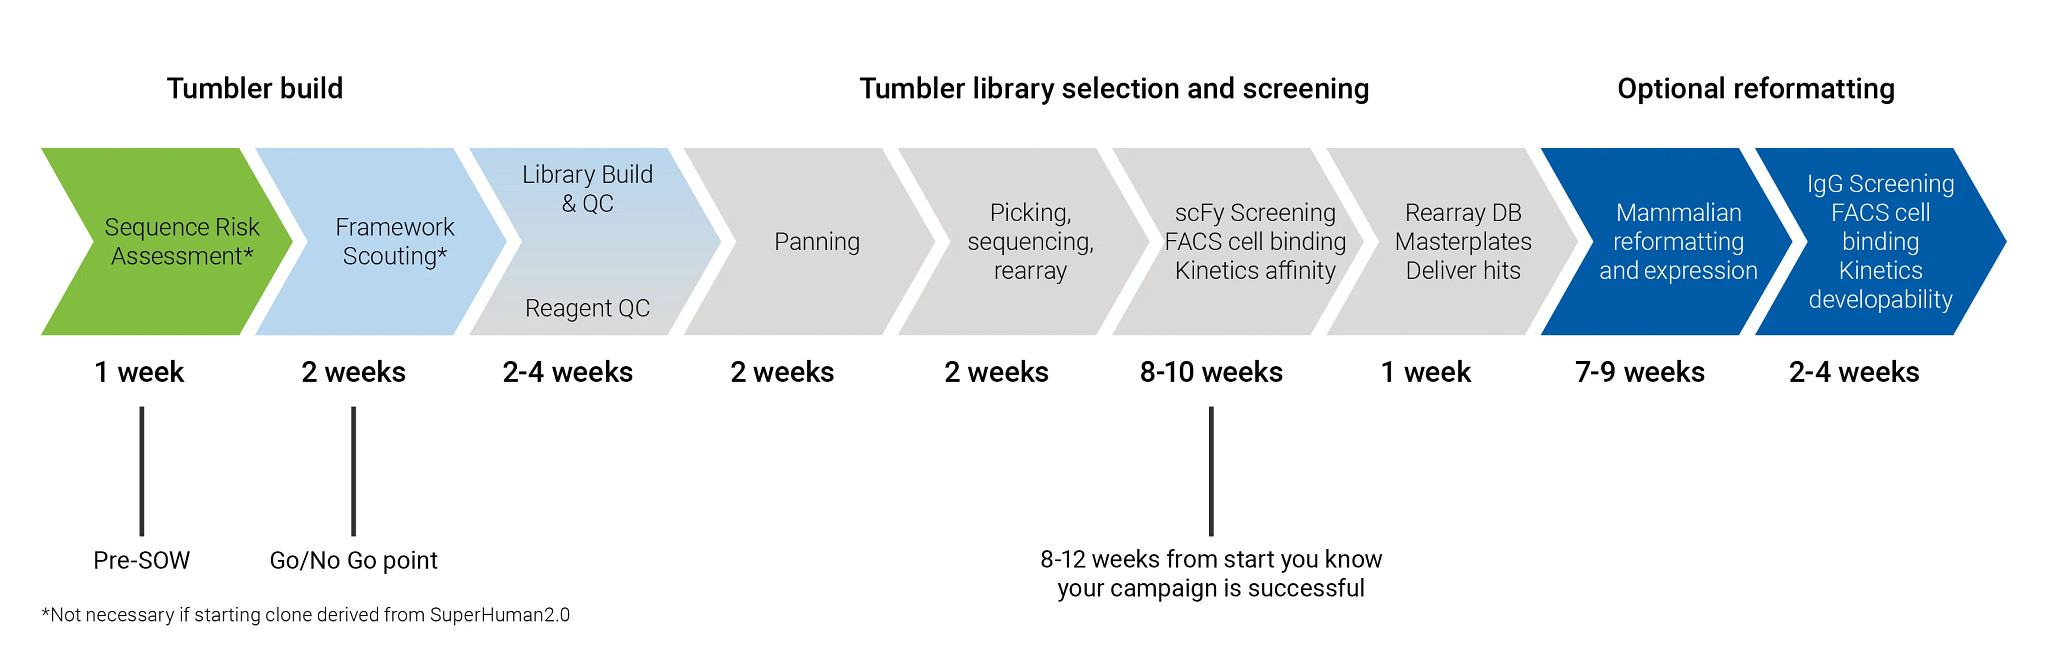 Tumbler antibody humanization campaigns start with a sequence risk assessment and include go/no go decision points along the way.